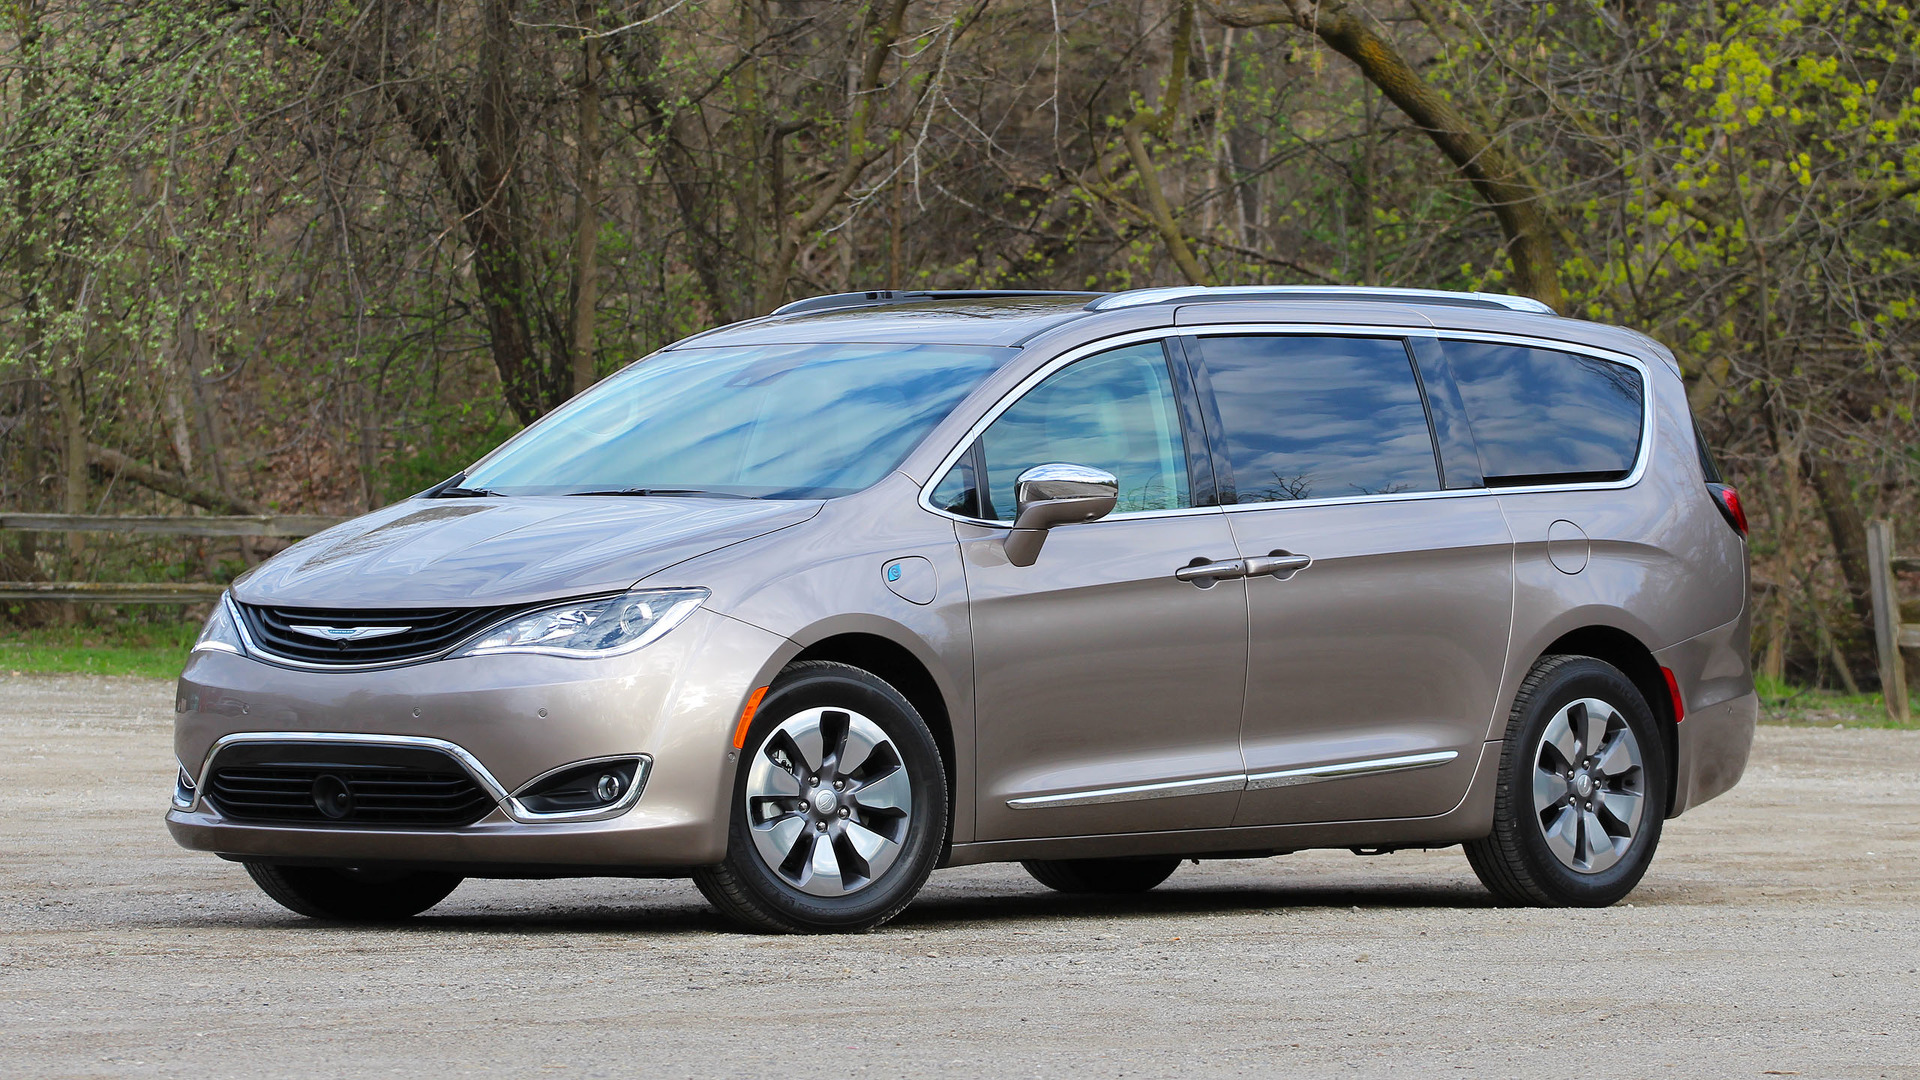 2017 Chrysler Pacifica Hybrid Review The No Fuss Gas Saver